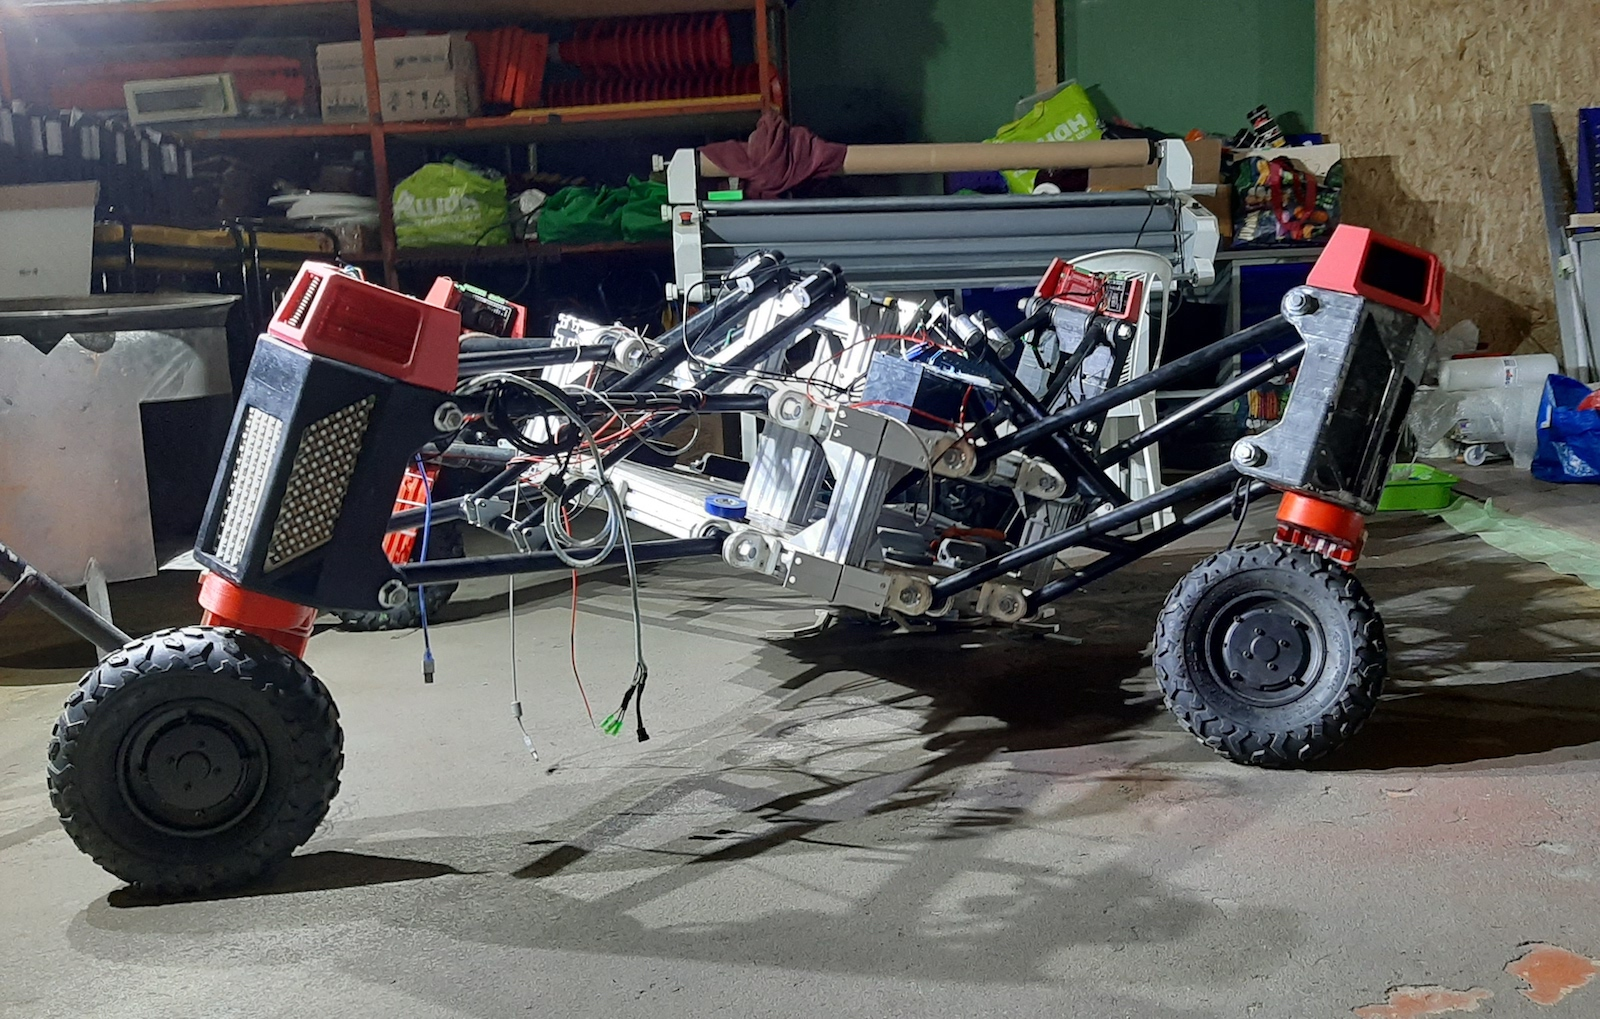 Figure 5. An agricultural robot for collecting information in farm fields won an honorable mention.